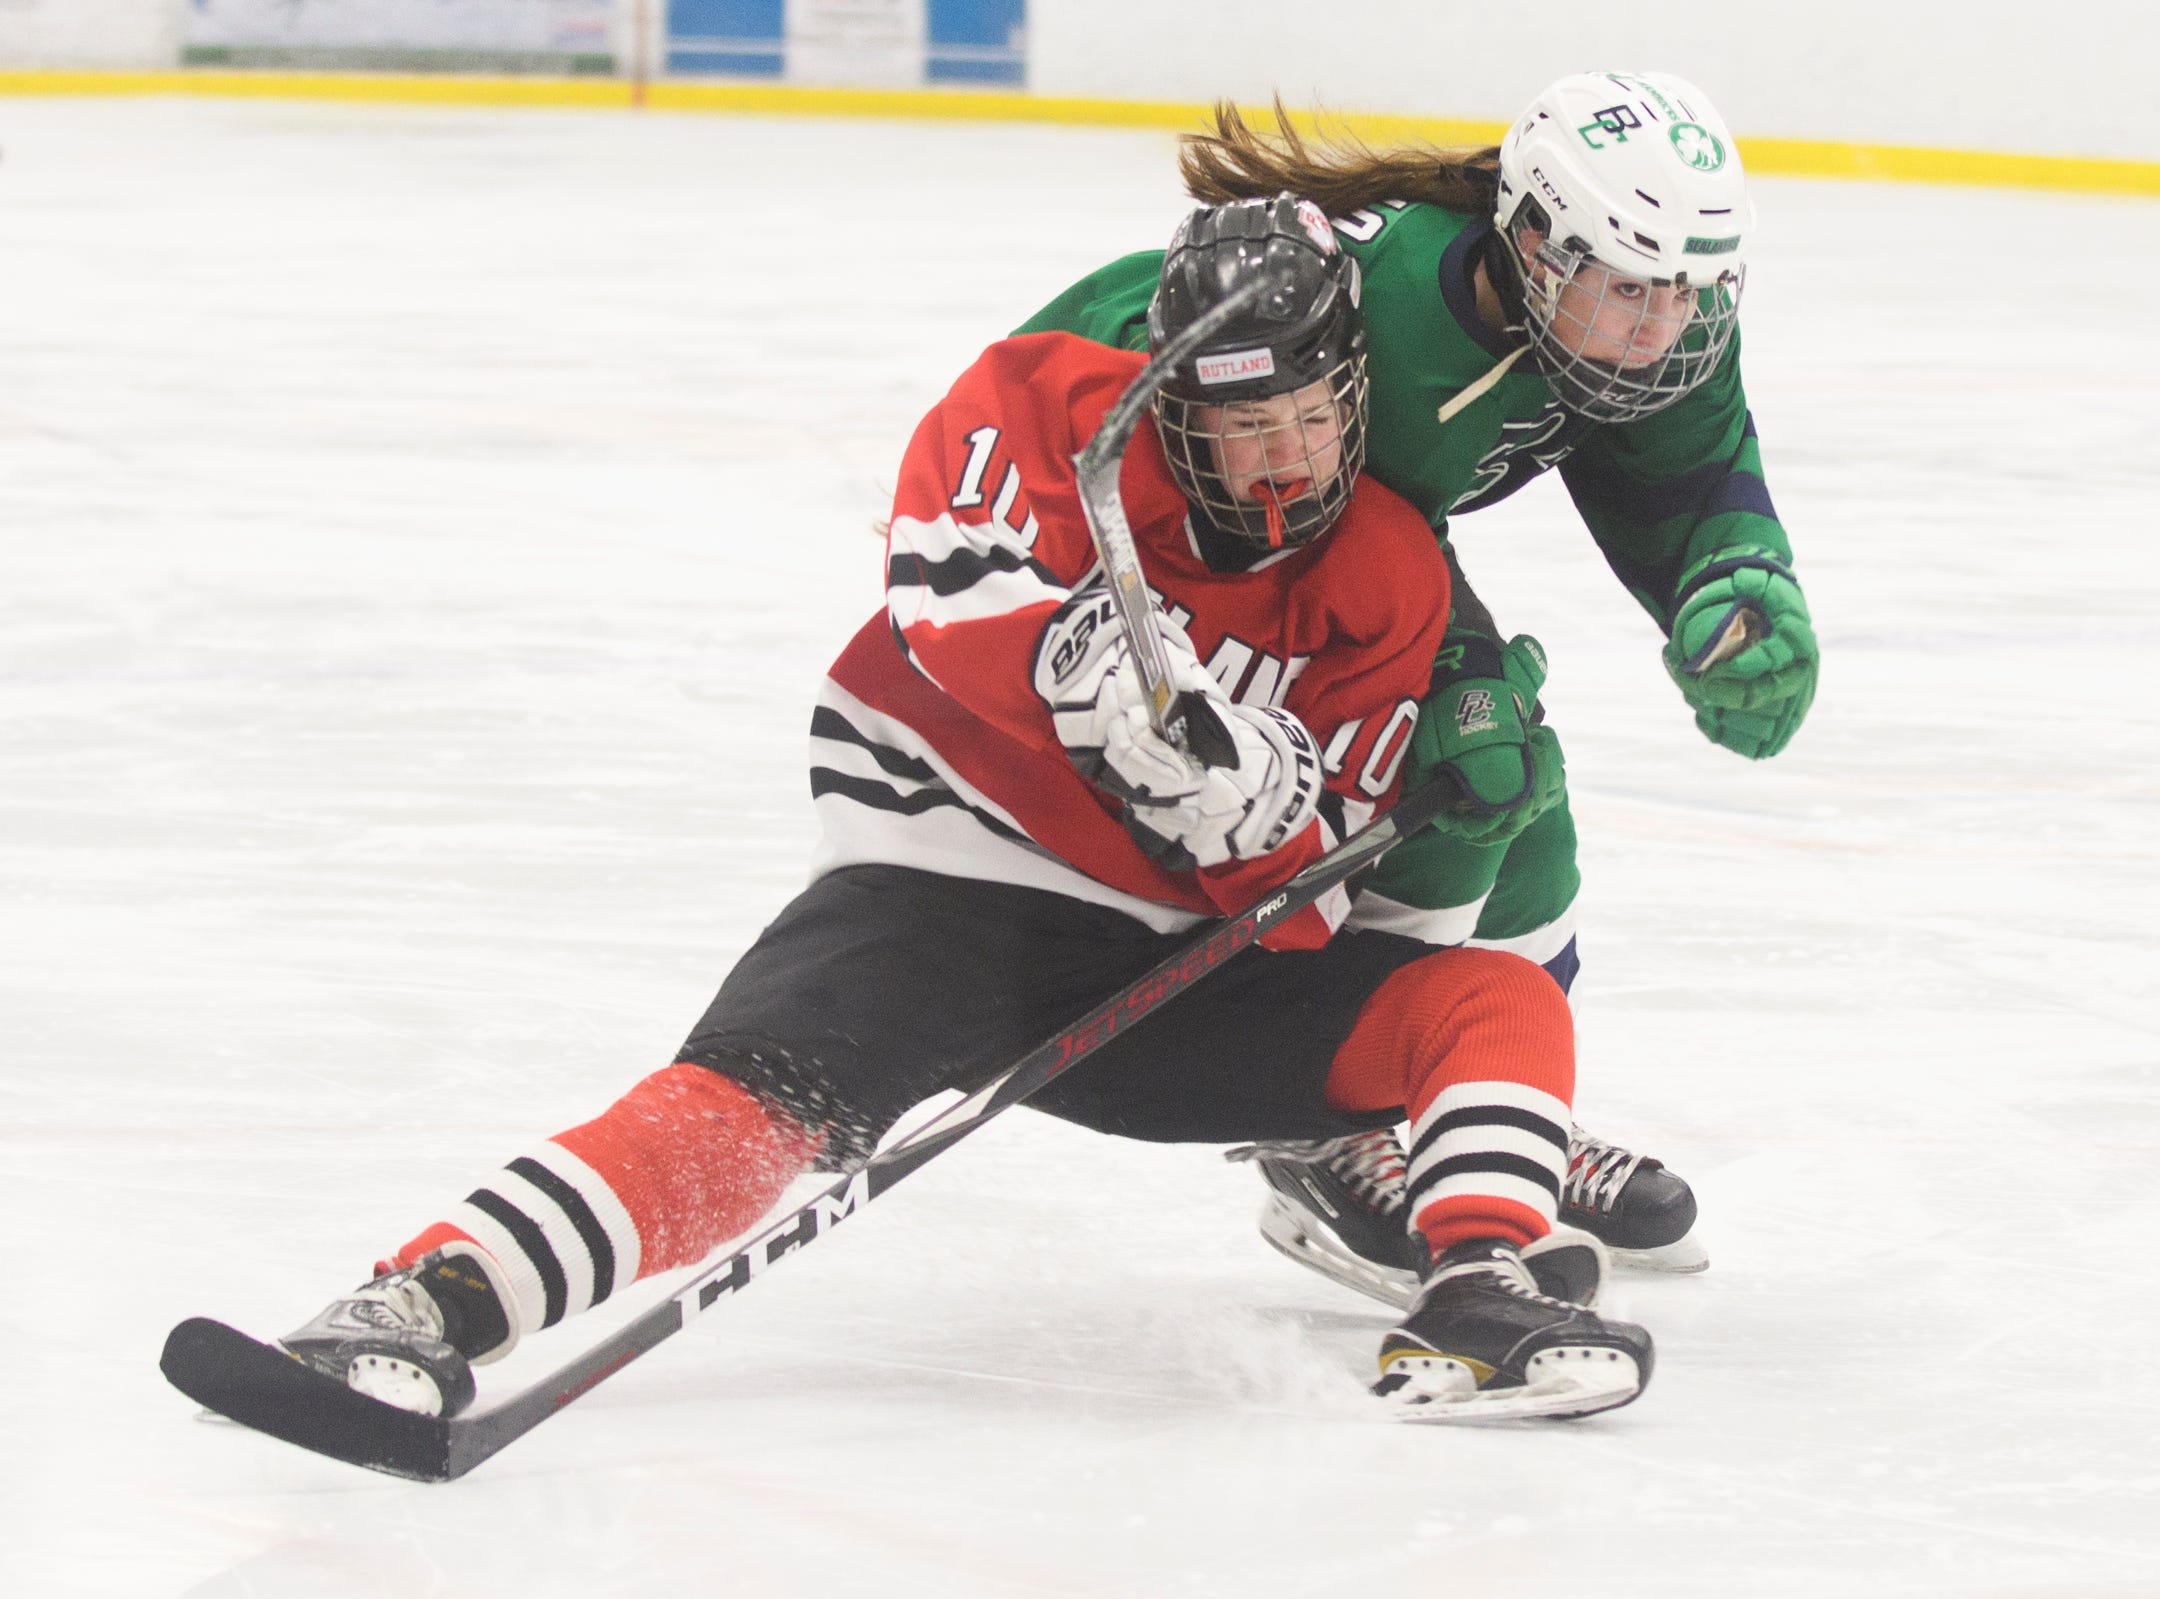 Rutland's Elise Lidmore (10) falls down as she and Burlington/Colchester's Madison Chagnon (4) chase down the puck during the girls hockey game between the Rutland Raiders and the Burlington/Colchester Sea Lakers at the Gordon Paquette Arena at Leddy Park on Tuesday afternoon March 5, 2019 in Burlington, Vermont.